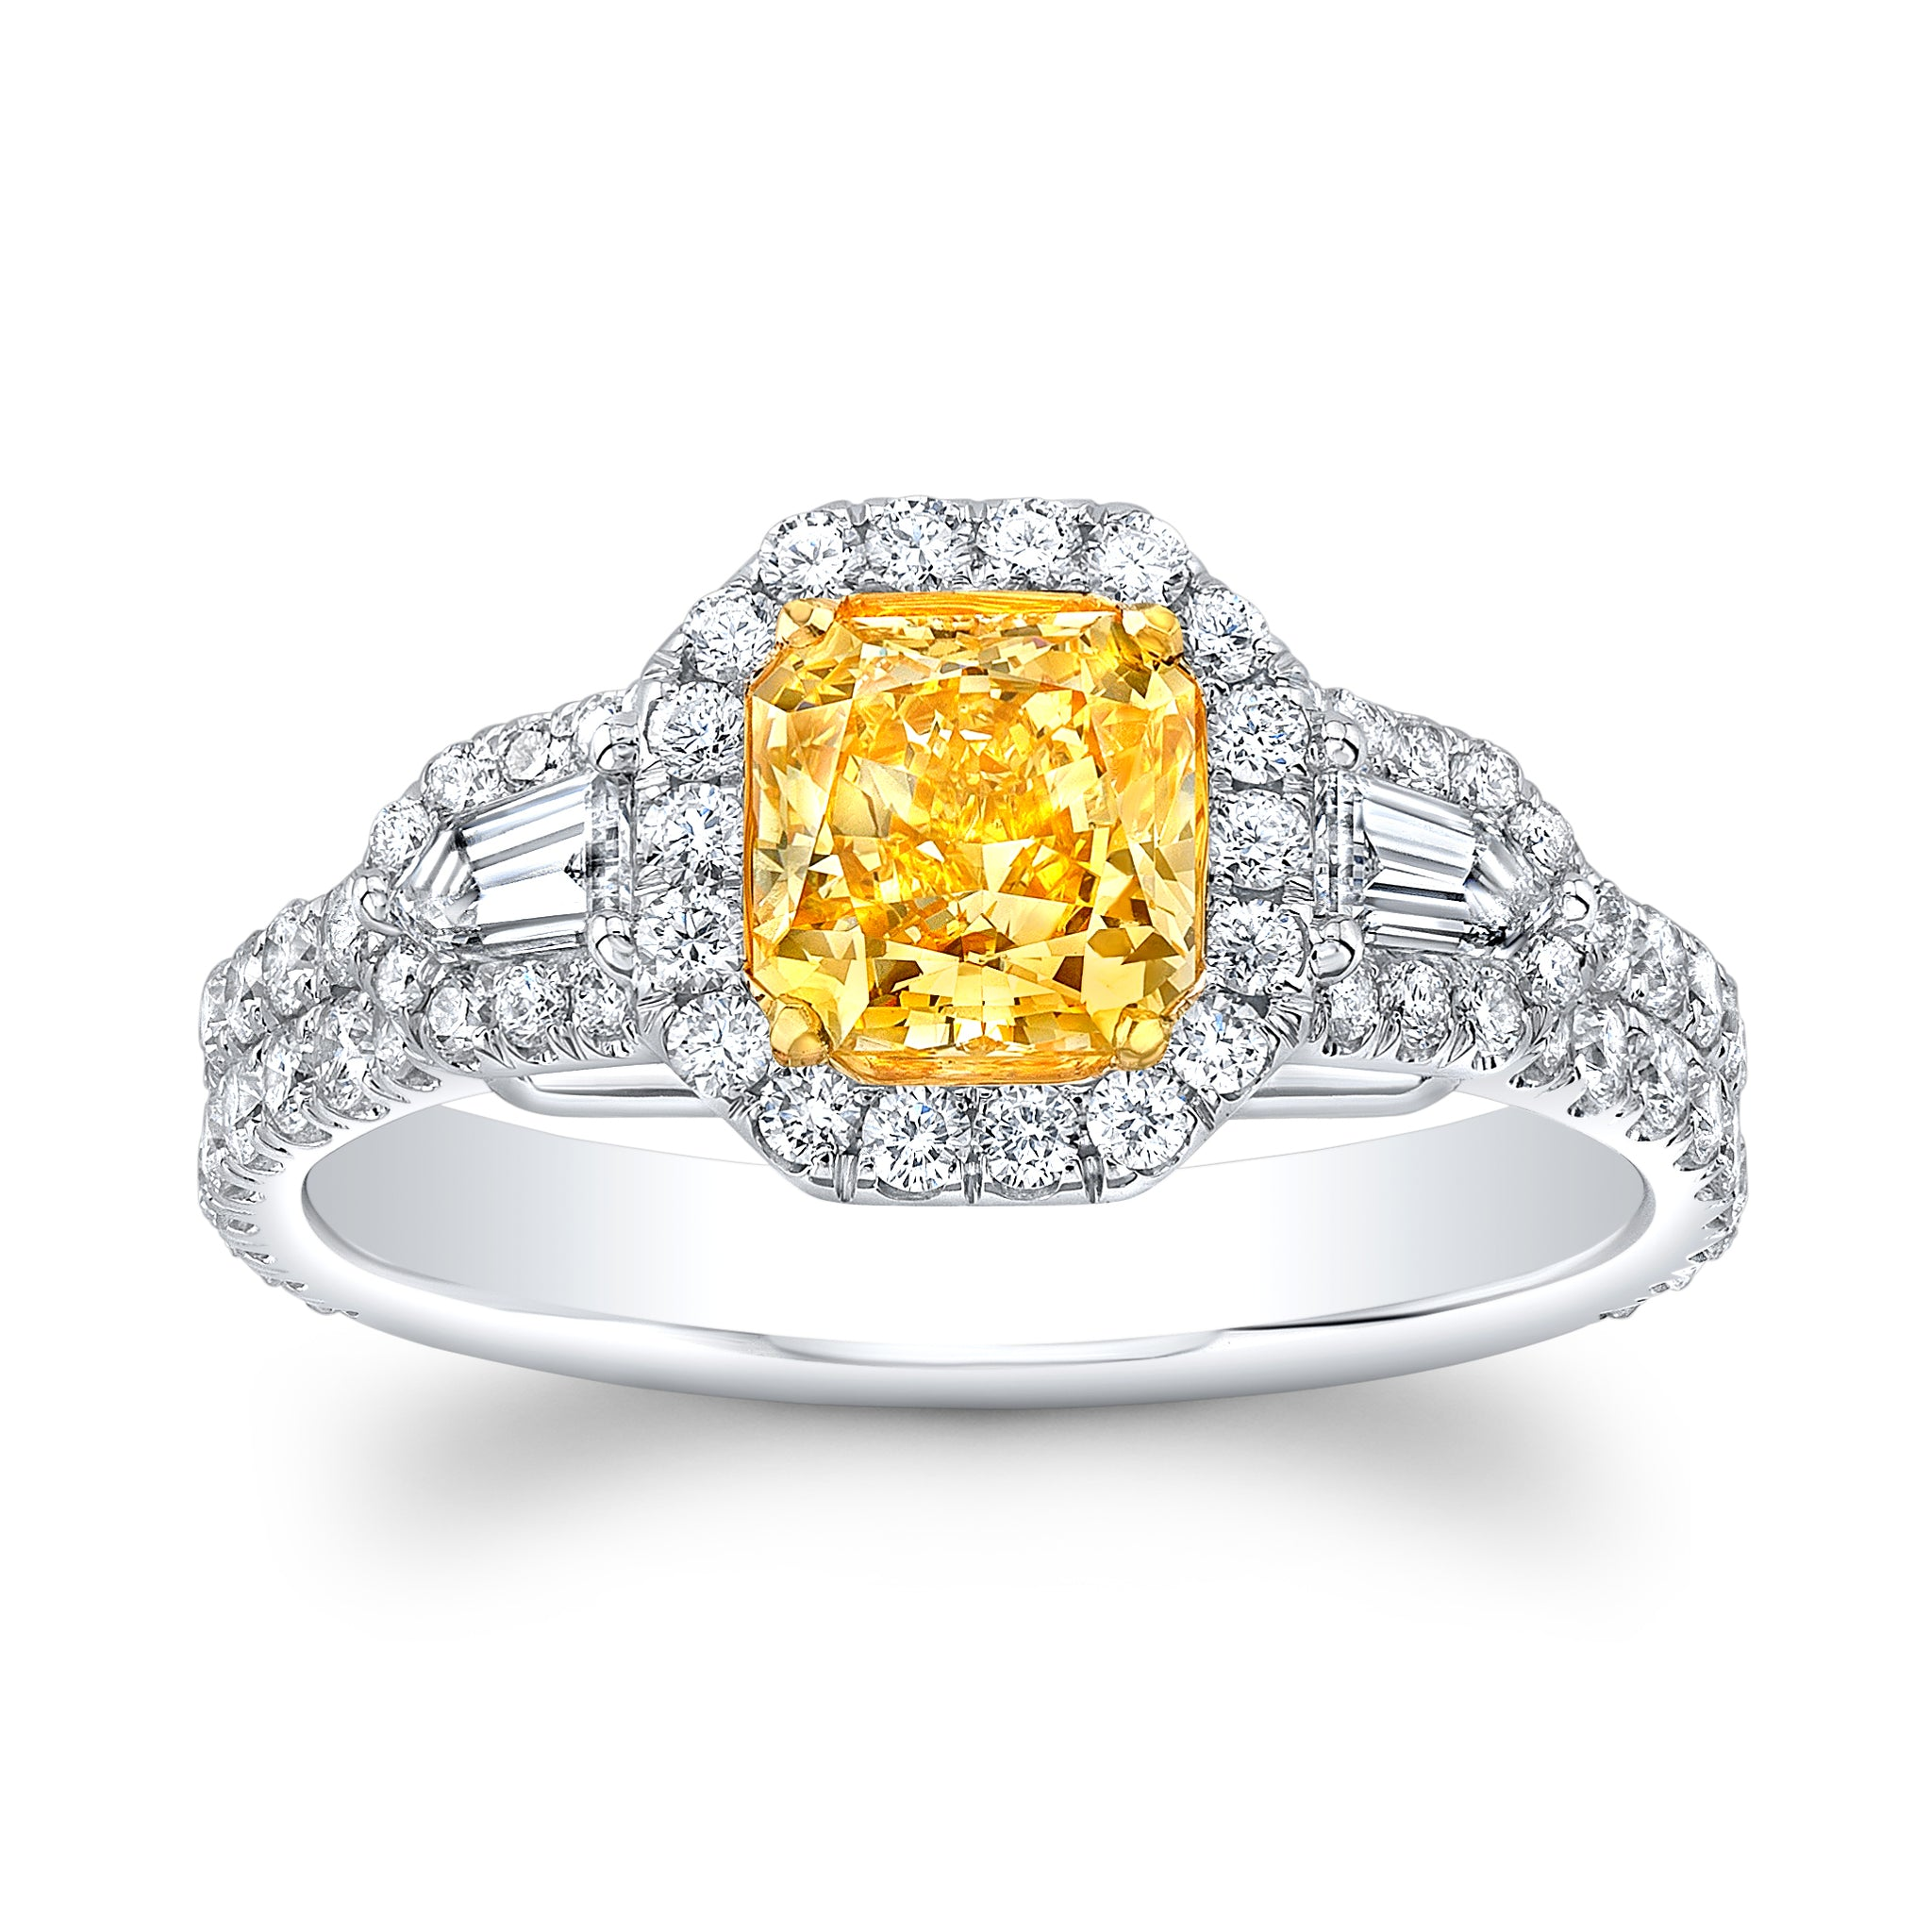 Fancy Intense Yellow GIA Diamond